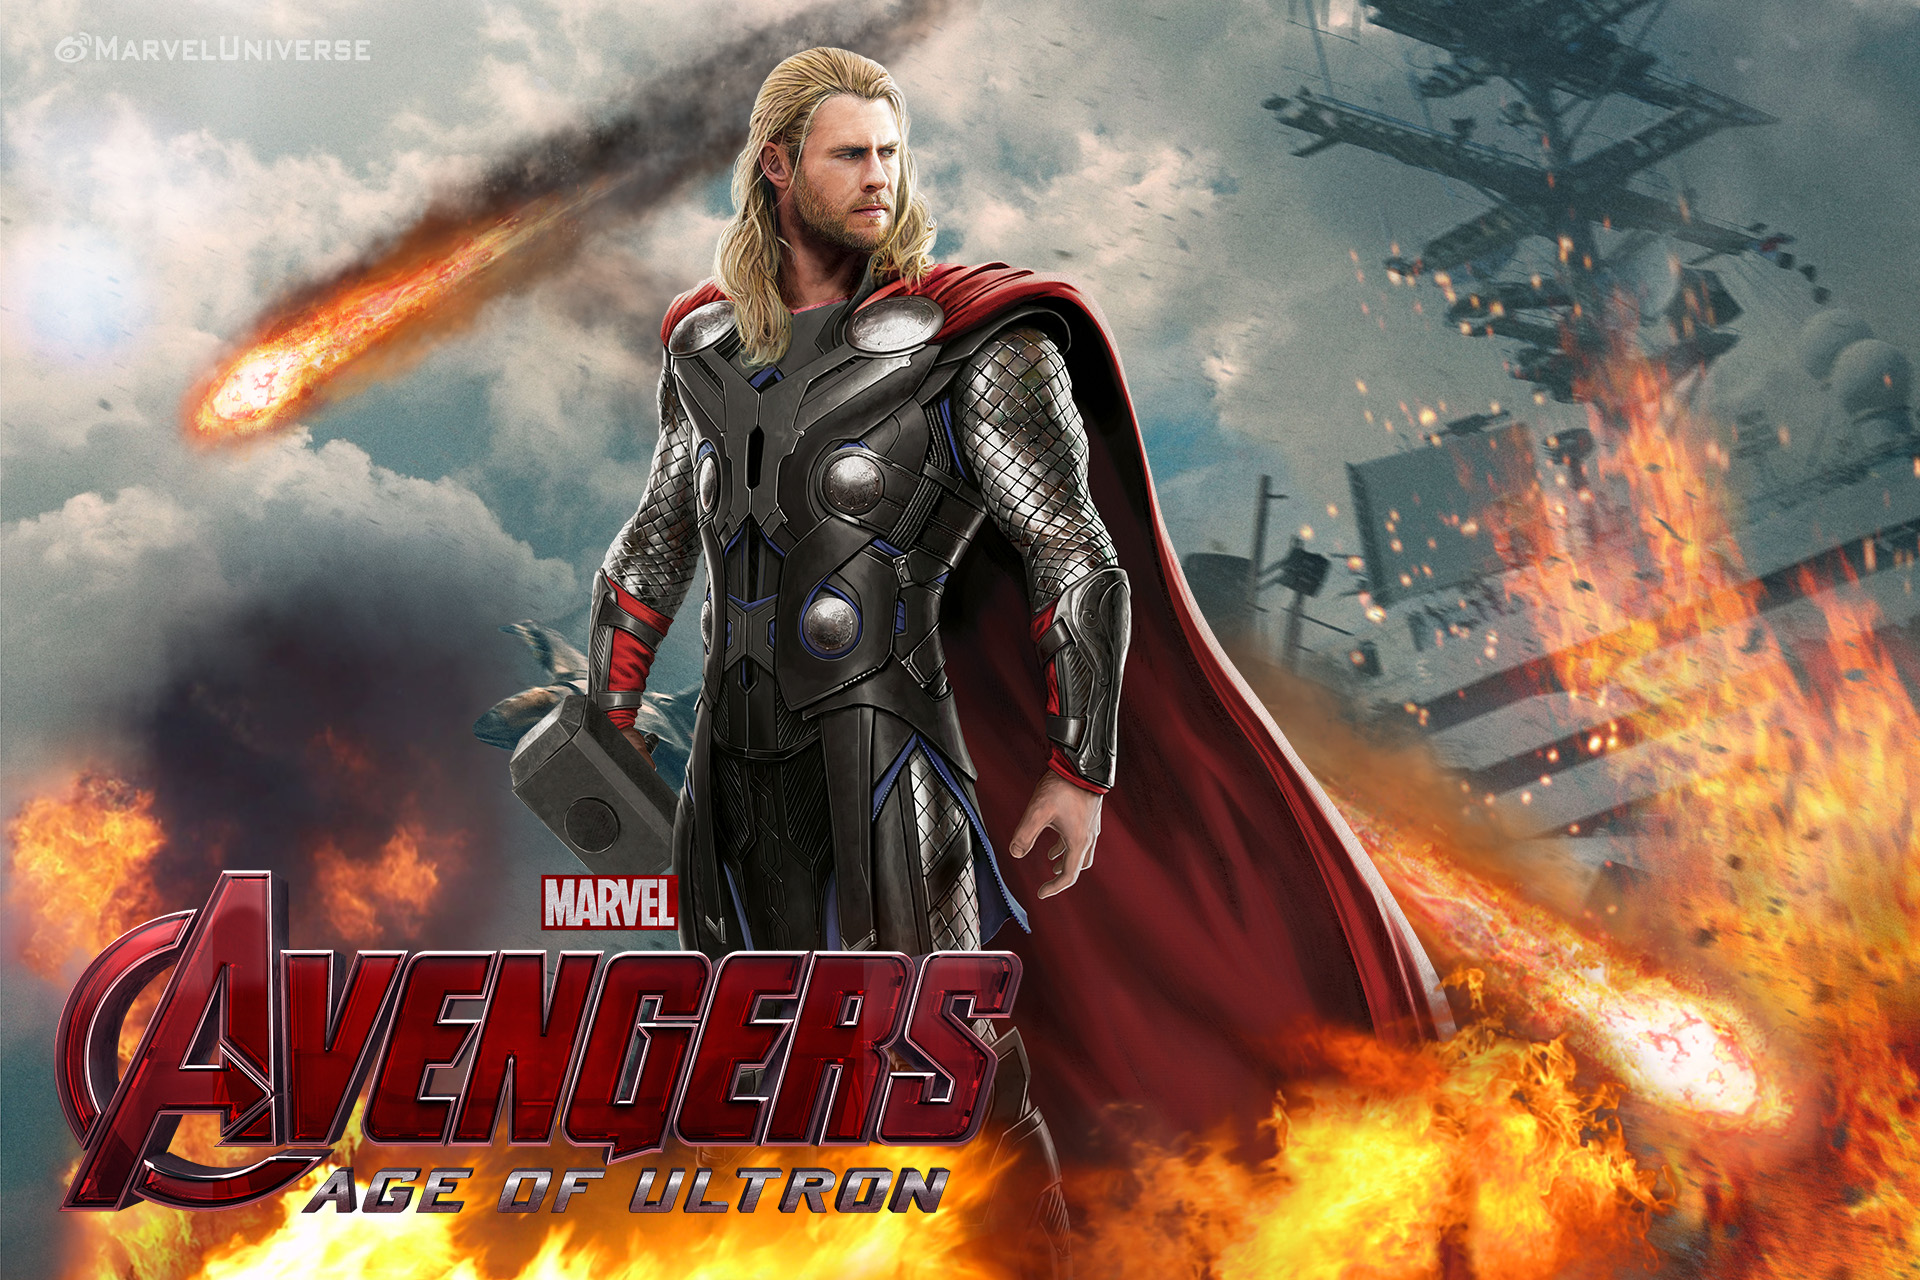 Avengers Age Of Ultron By Iloegbunam On Deviantart: Thor By Chenshijie9095 On DeviantArt